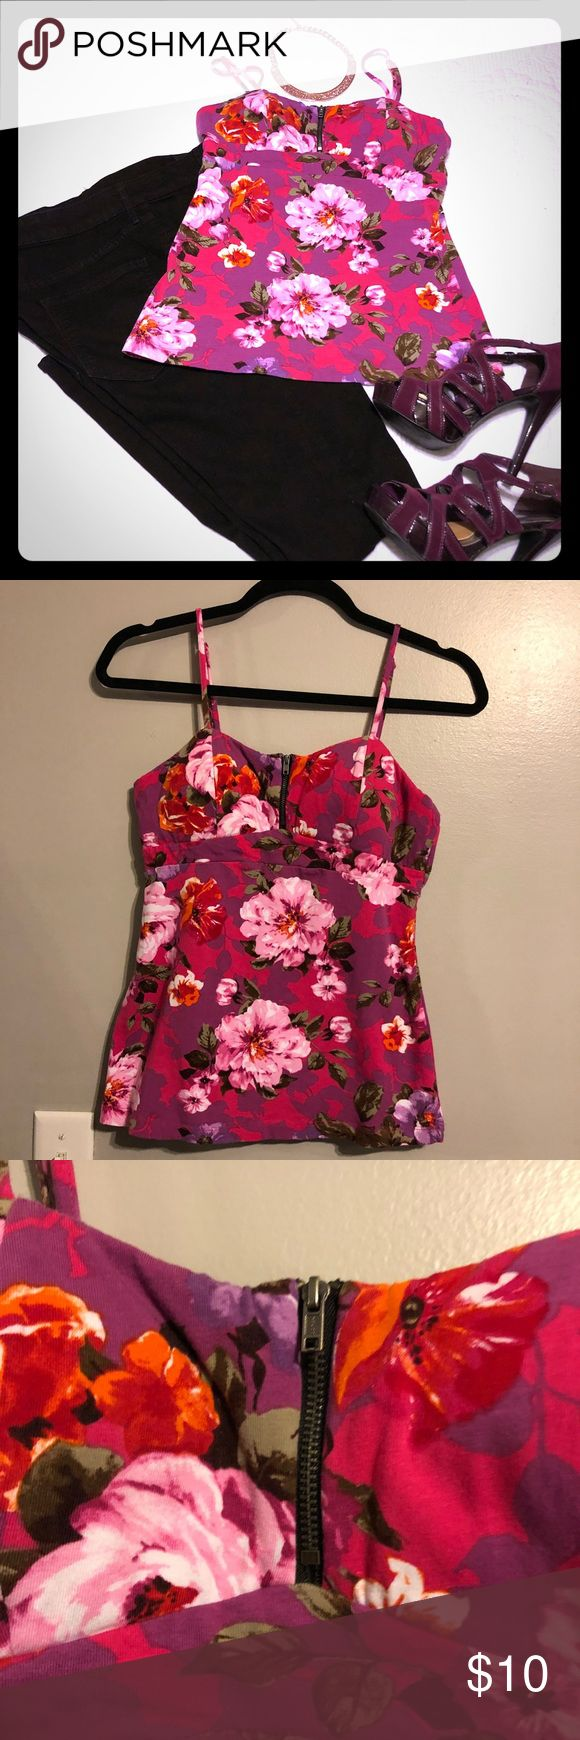 Flower Spaghetti Strap top 🌸 🌺 LIKE NEW. Cute top for the Spring. Hot Pink and Purple with light pink and orange flowers. Zip front and cinched back. 95% Cotton 5% Spandex. Tops Camisoles